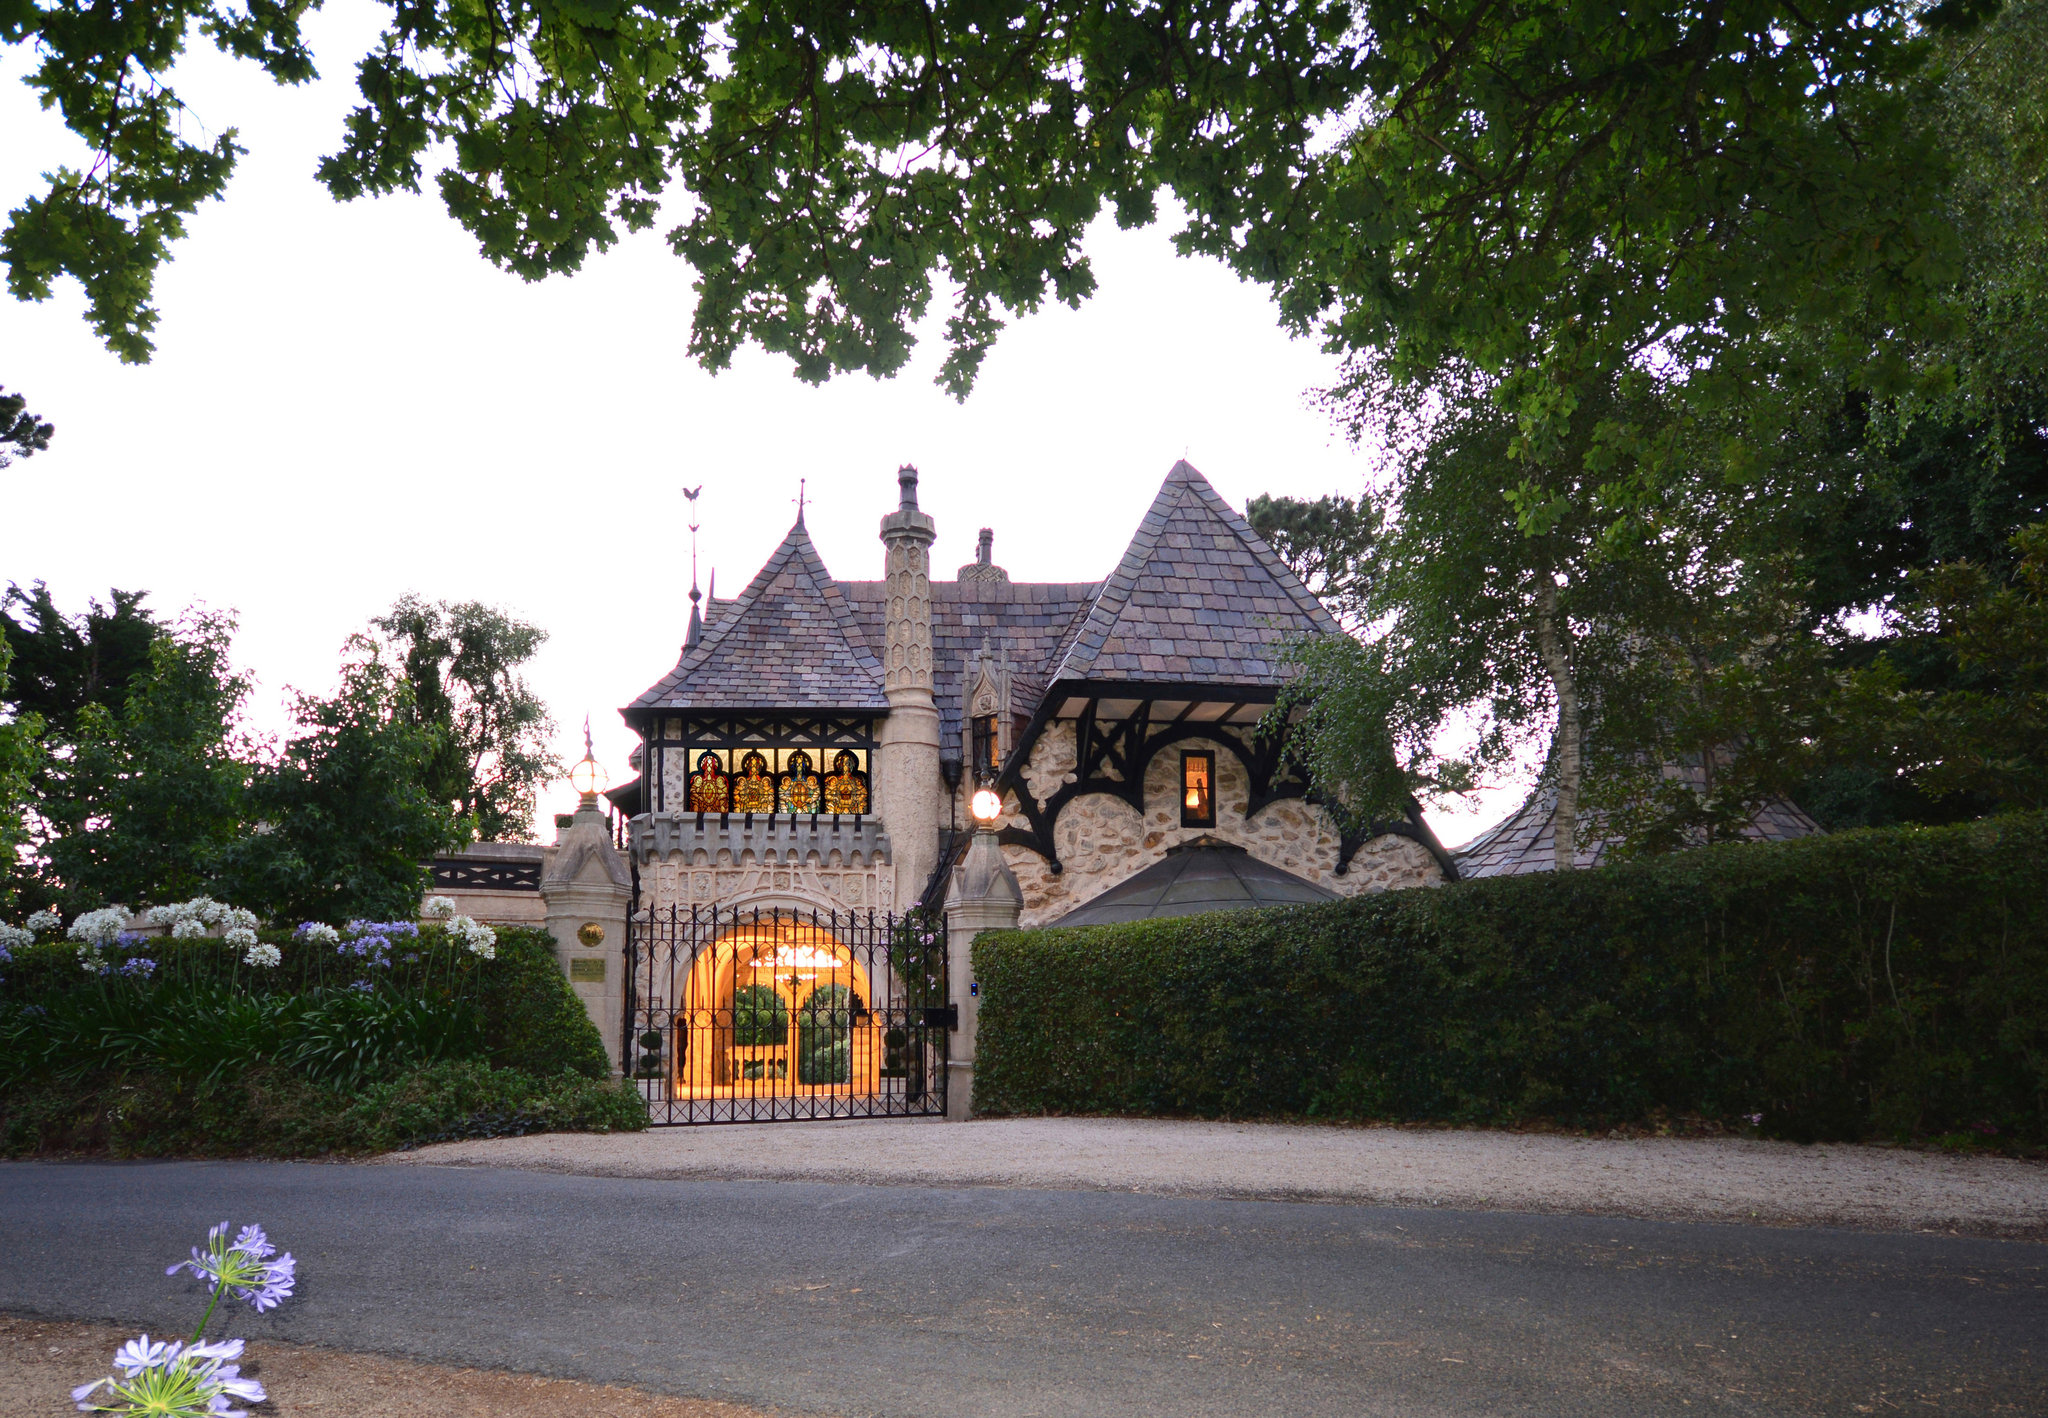 Thorngrove Manor Hotel